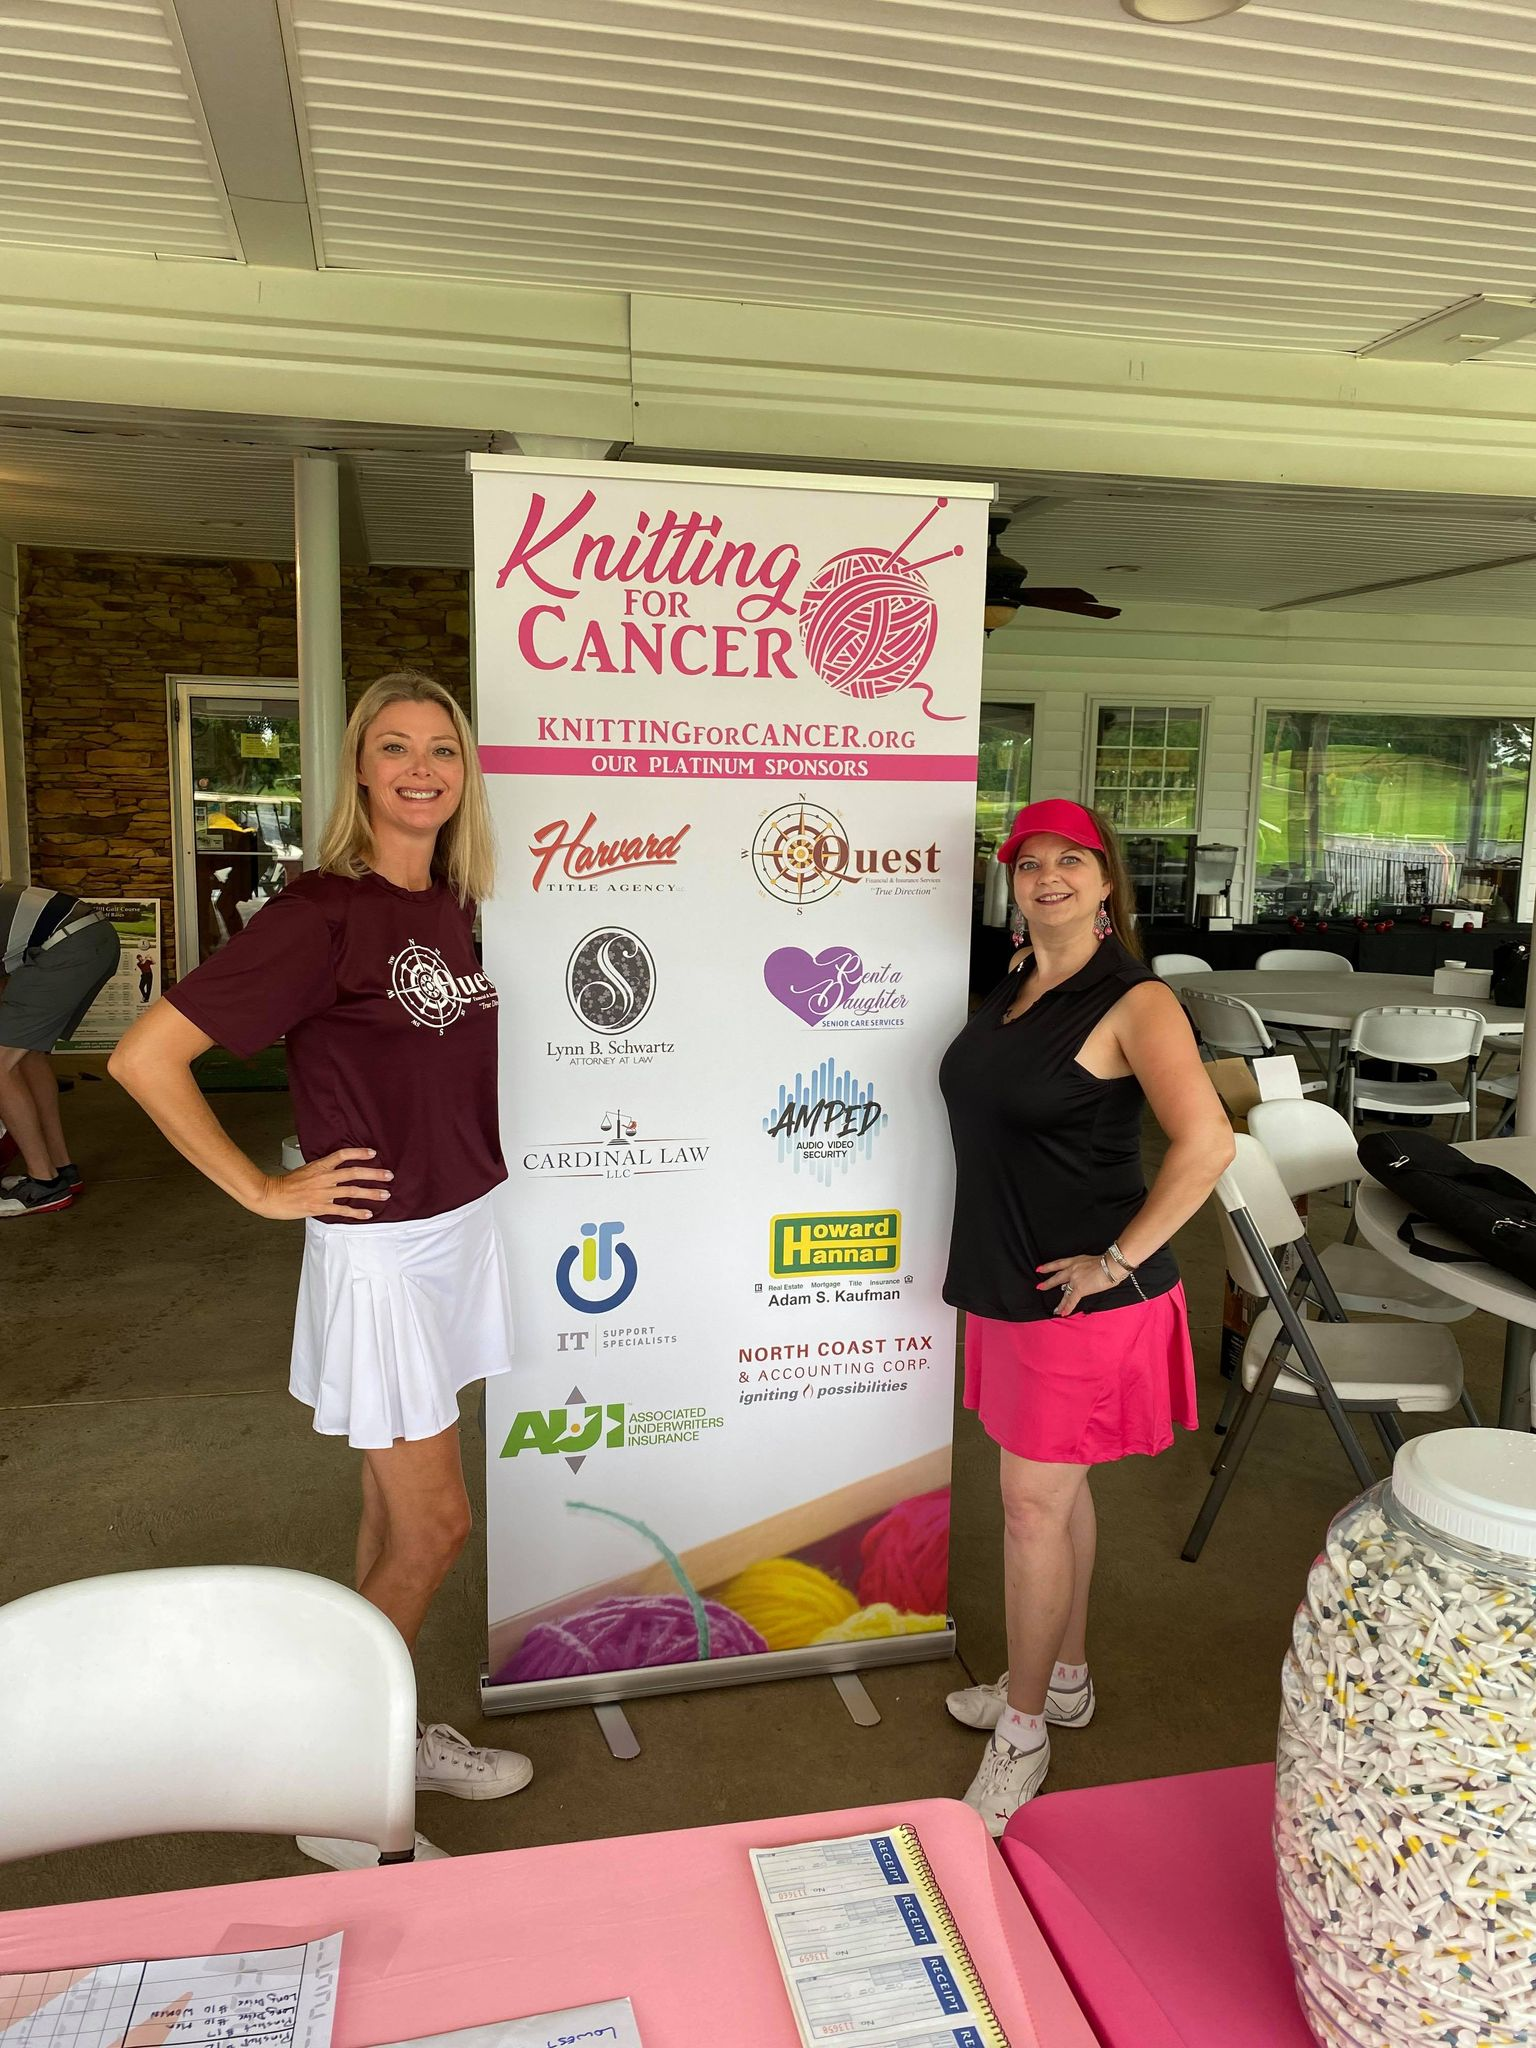 Wow, what a day! Our 1st Annual Knitting for Cancer Golf Outing was a complete success. Thank you to Quest Financial for being our Corporate Sponsor and the opportunity to be your Brand Ambassador once again. We definitely made an impression out there on the course! With everyone's help, we were able to raise over $3,500 for cancer warriors!!